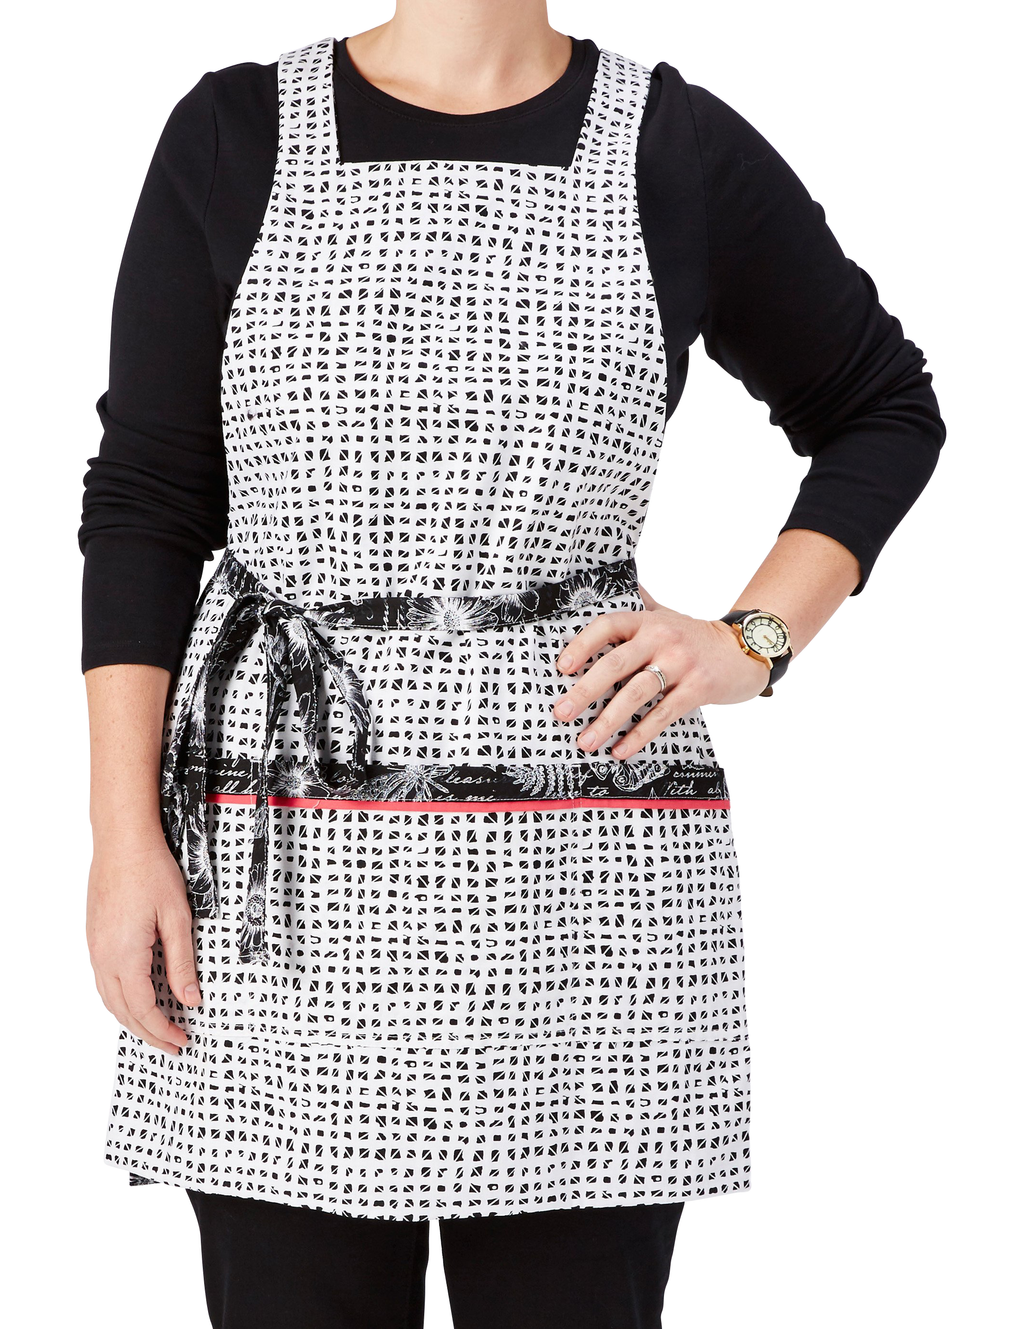 This stylish apron features a timeless black and white garden journal print apron reversing to a black and white pattern of miniature blocks, miniature blocks print side, front view.